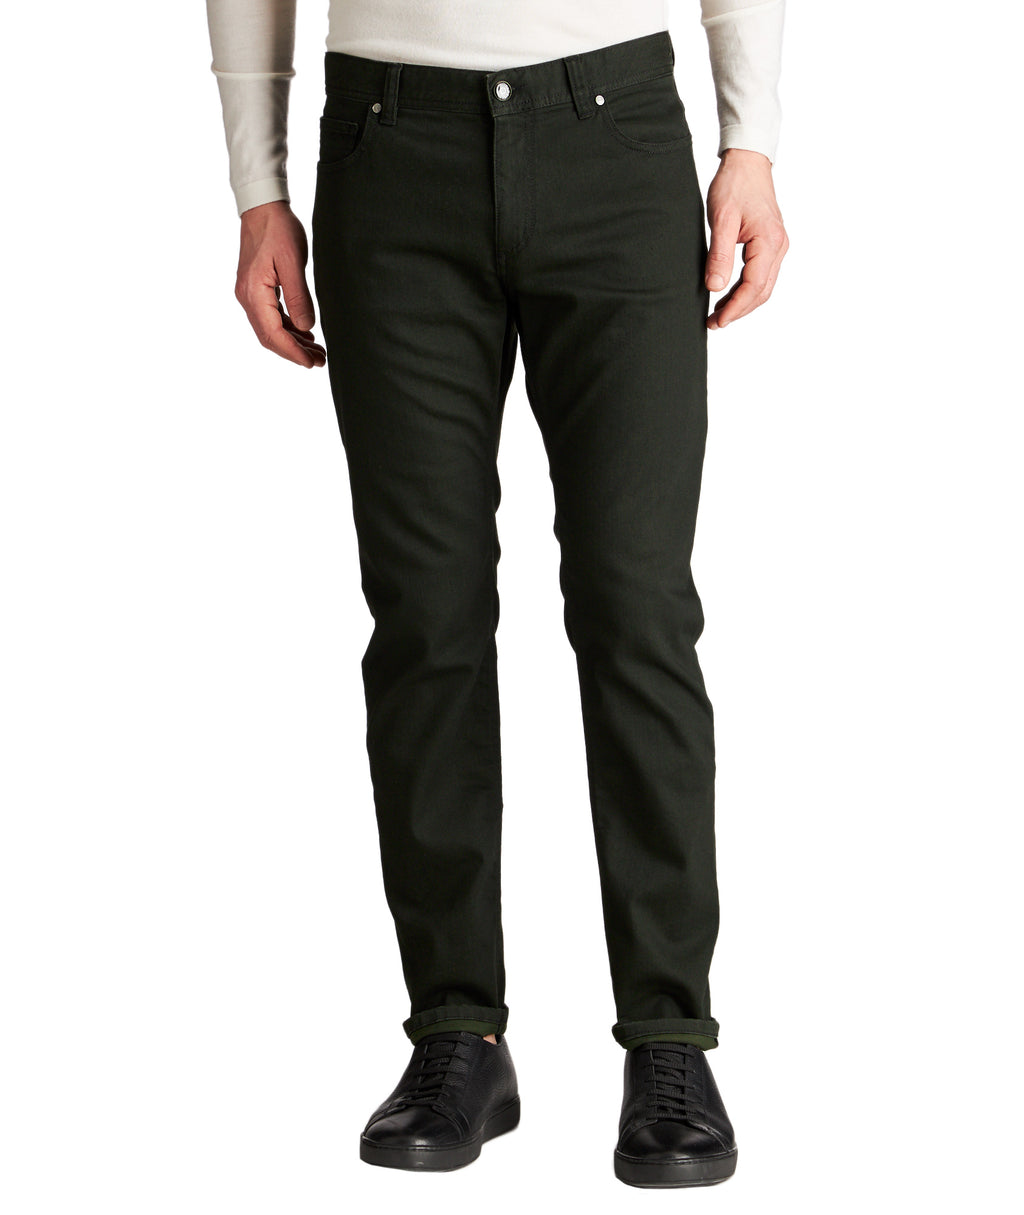 Alberto Jeans - Pipe Slim Fit Green